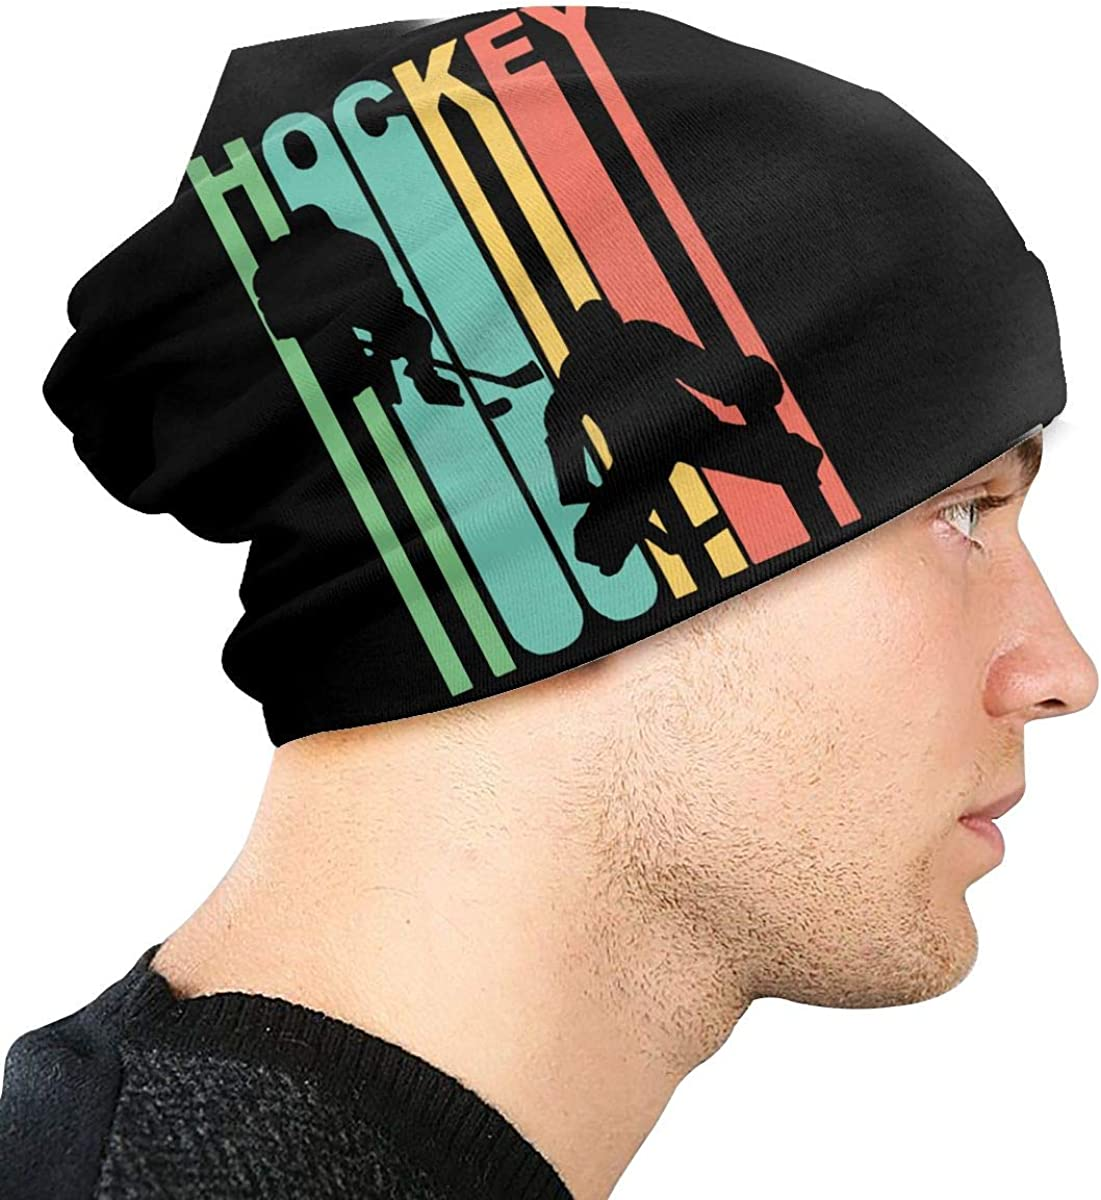 Thin Stretchy /& Soft Winter Cap Vintage Retro 1970s Style Hockey Unisex Solid Color Beanie Hat